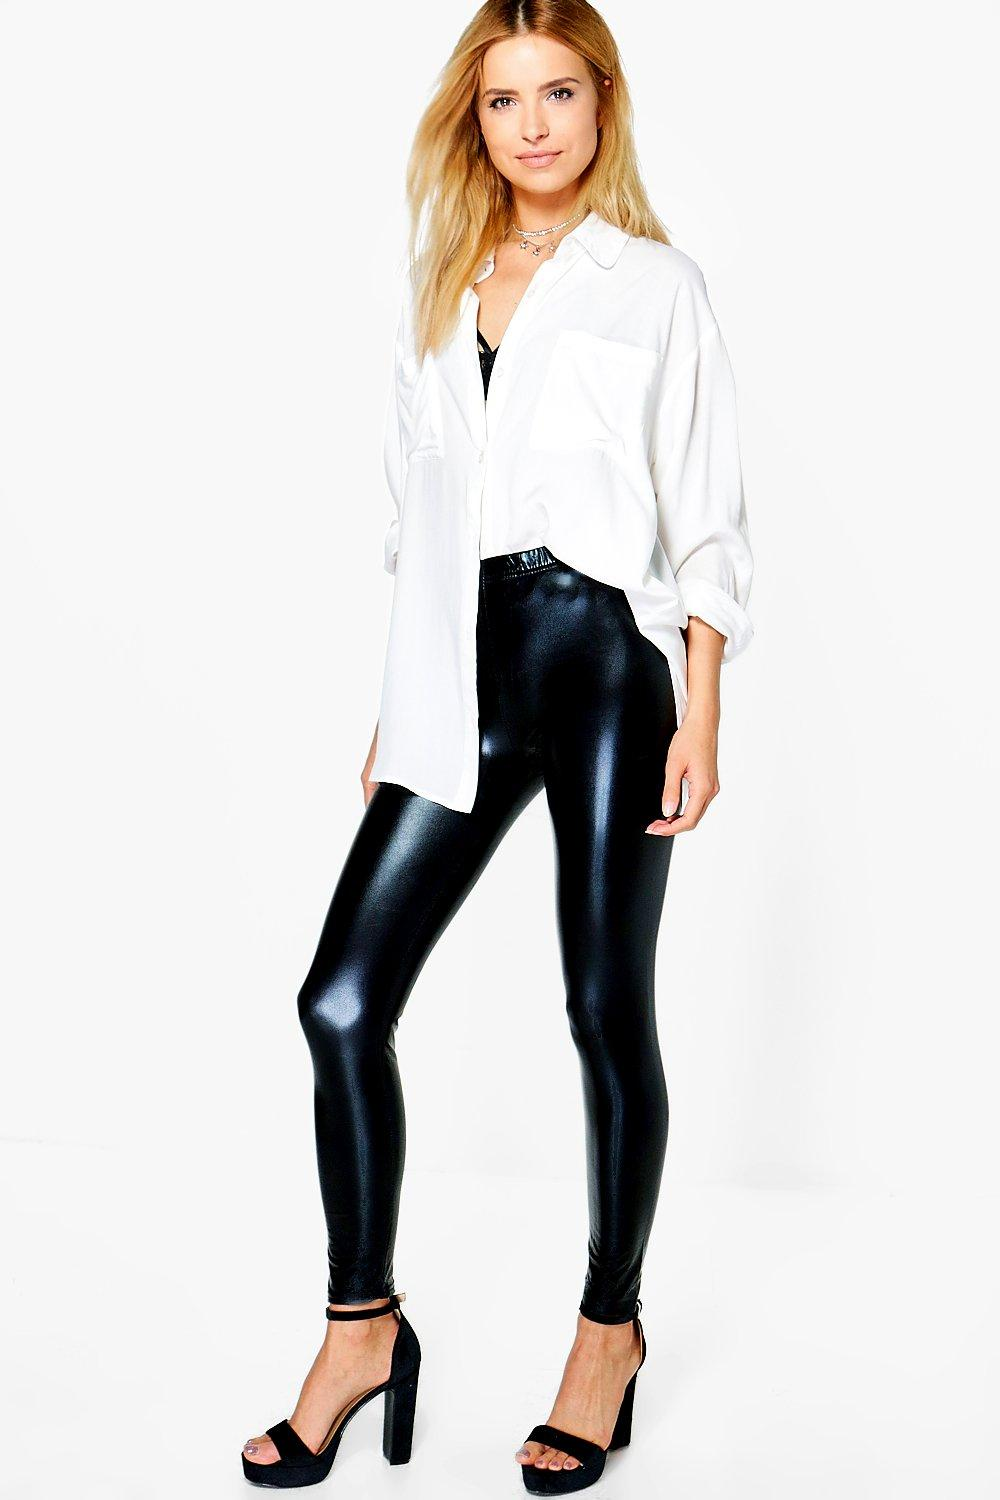 Yazmine Wet Look Leggings black